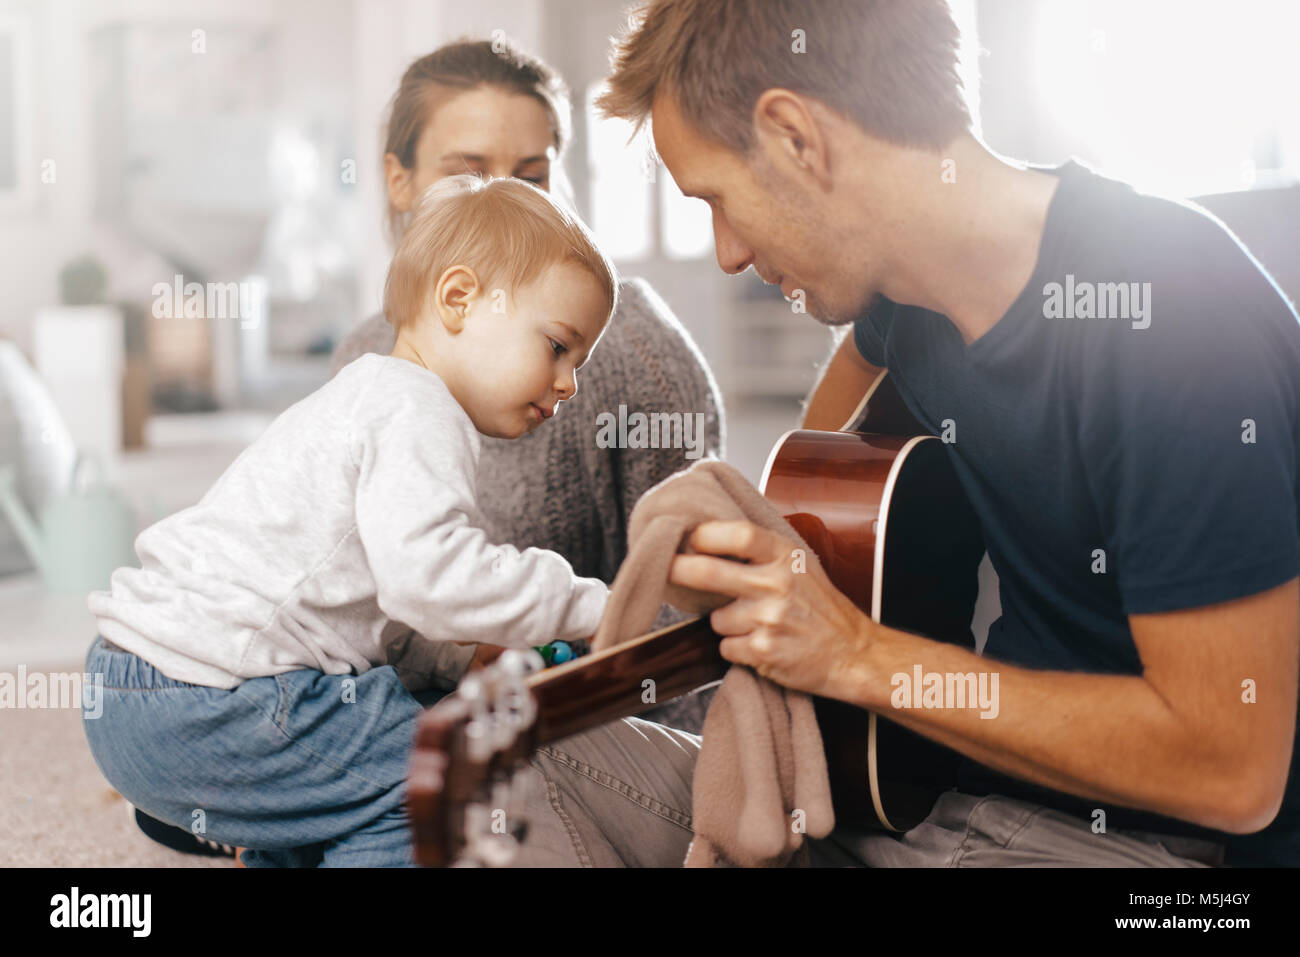 Little girl examining father's guitar at home - Stock Image